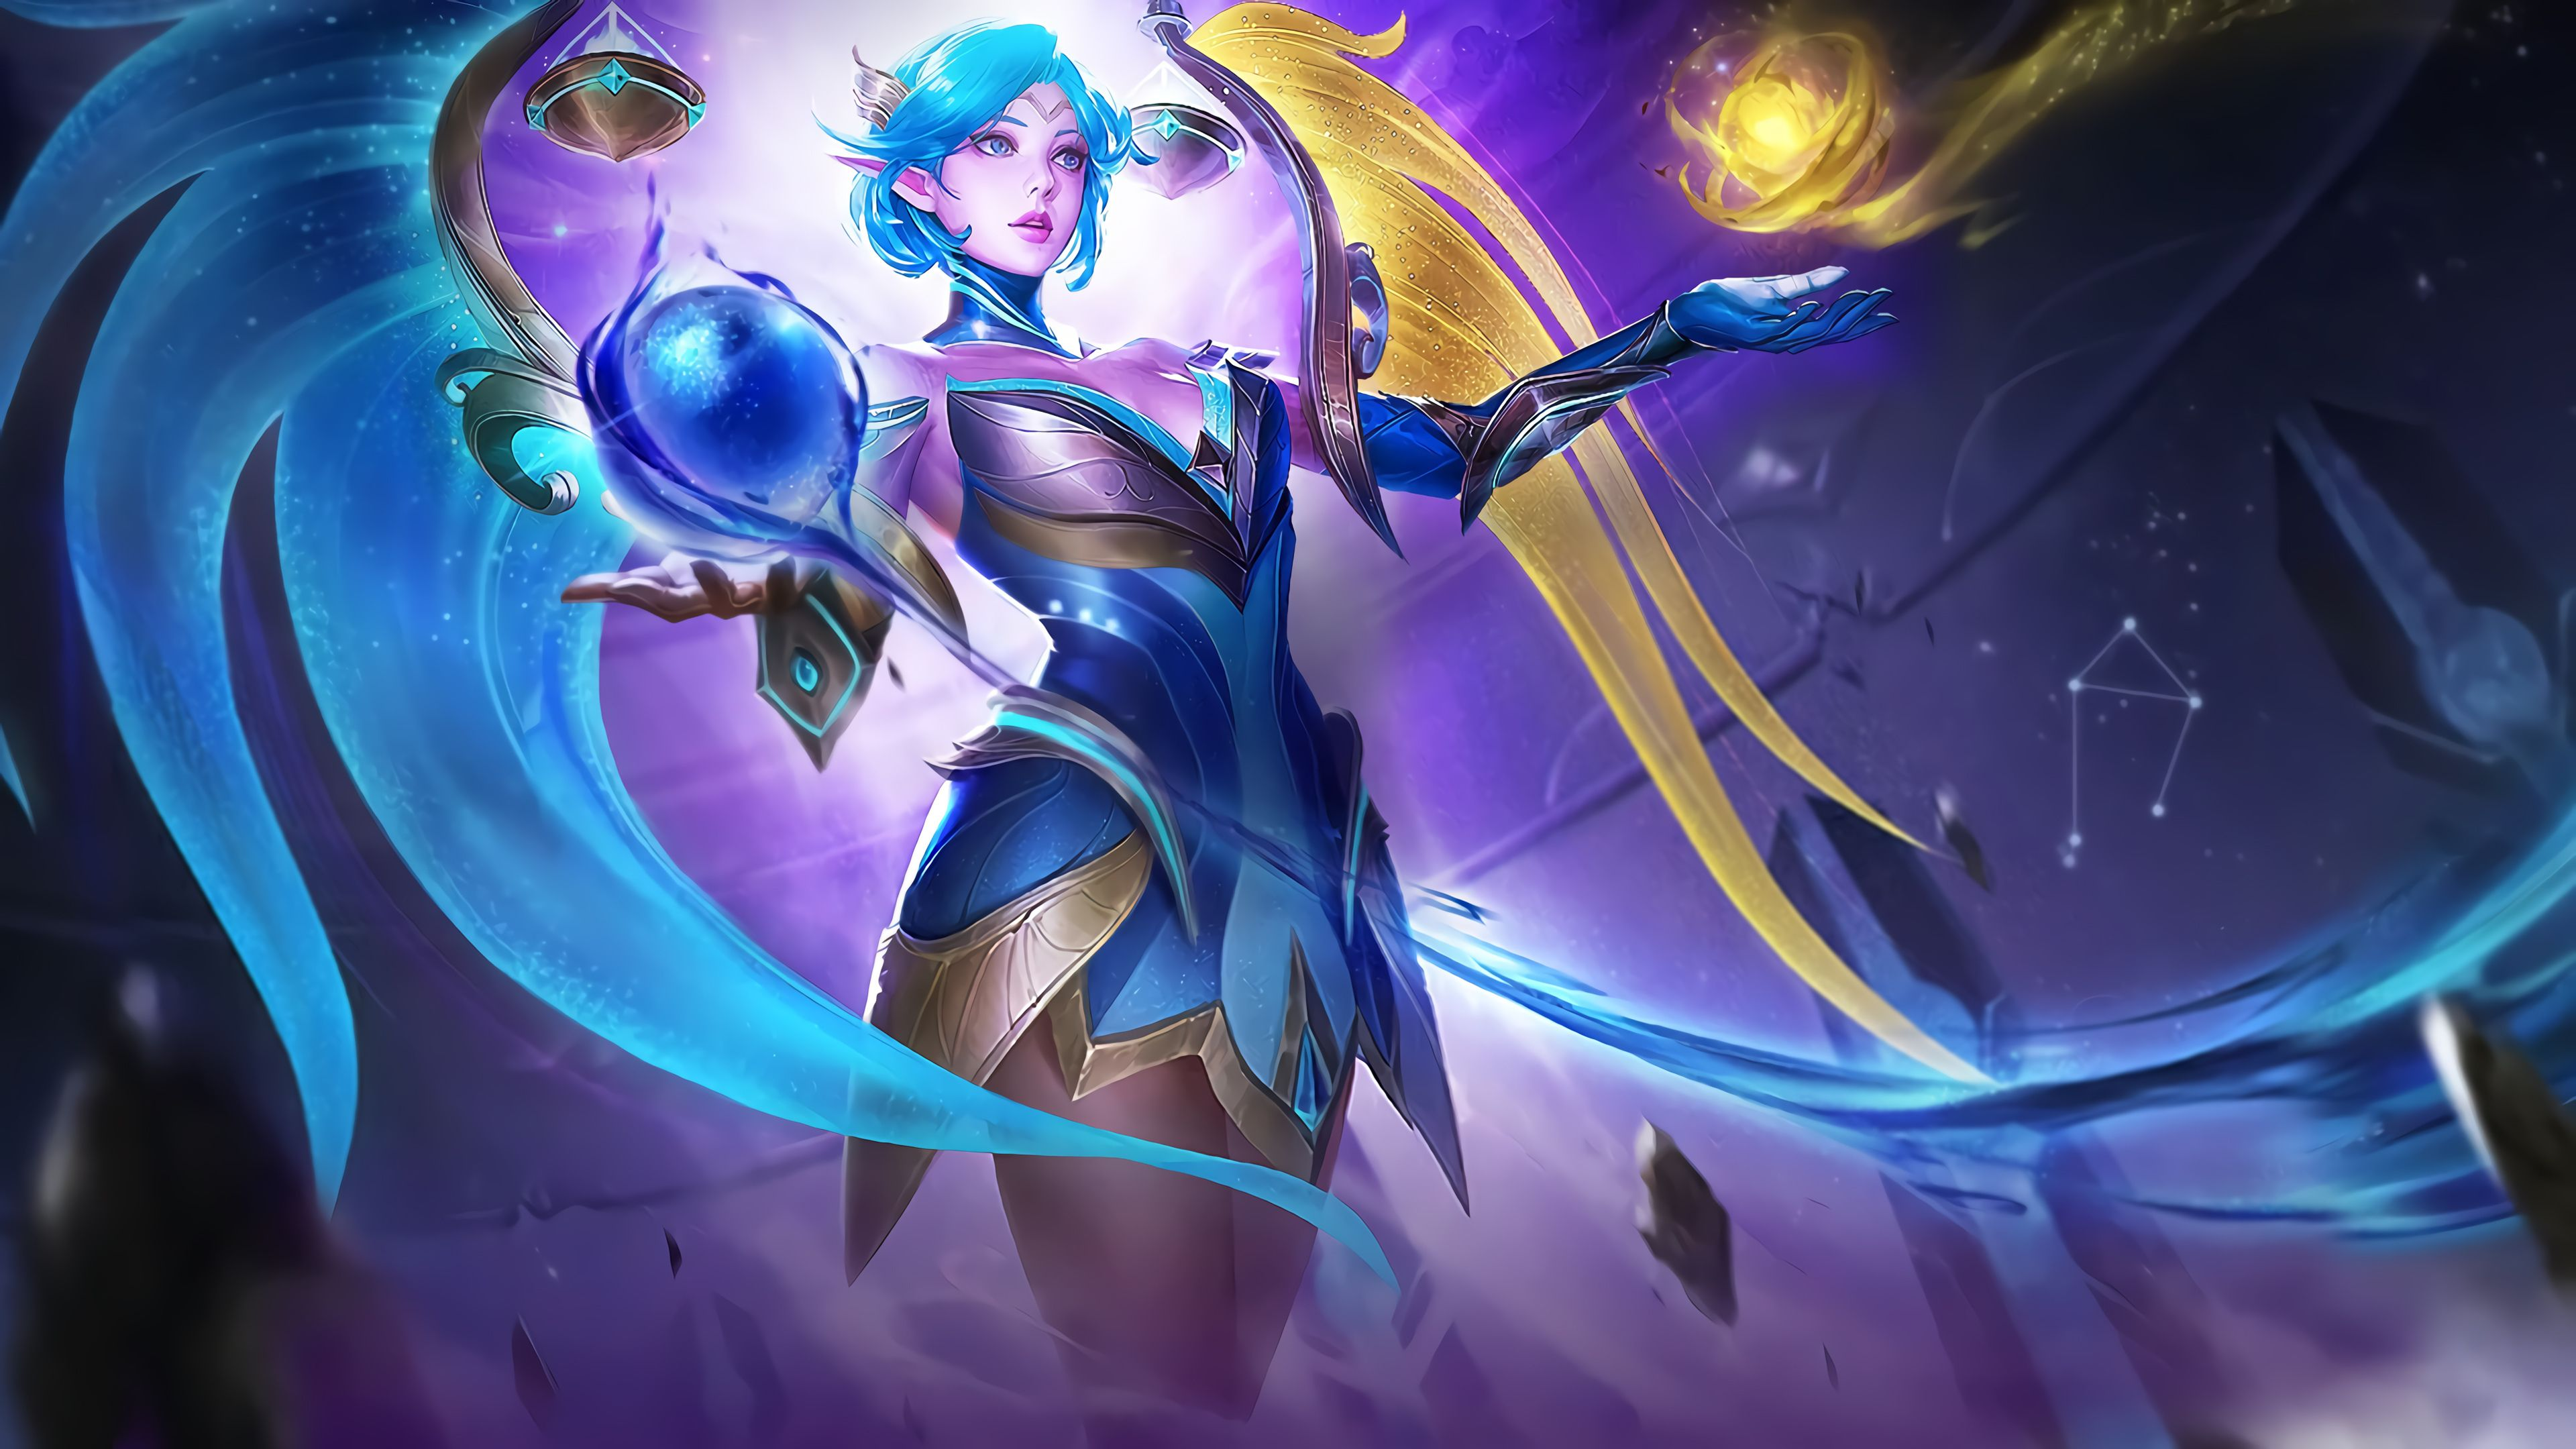 3840x2160 Mobile game, girl warrior, blue hair, art wallpaper